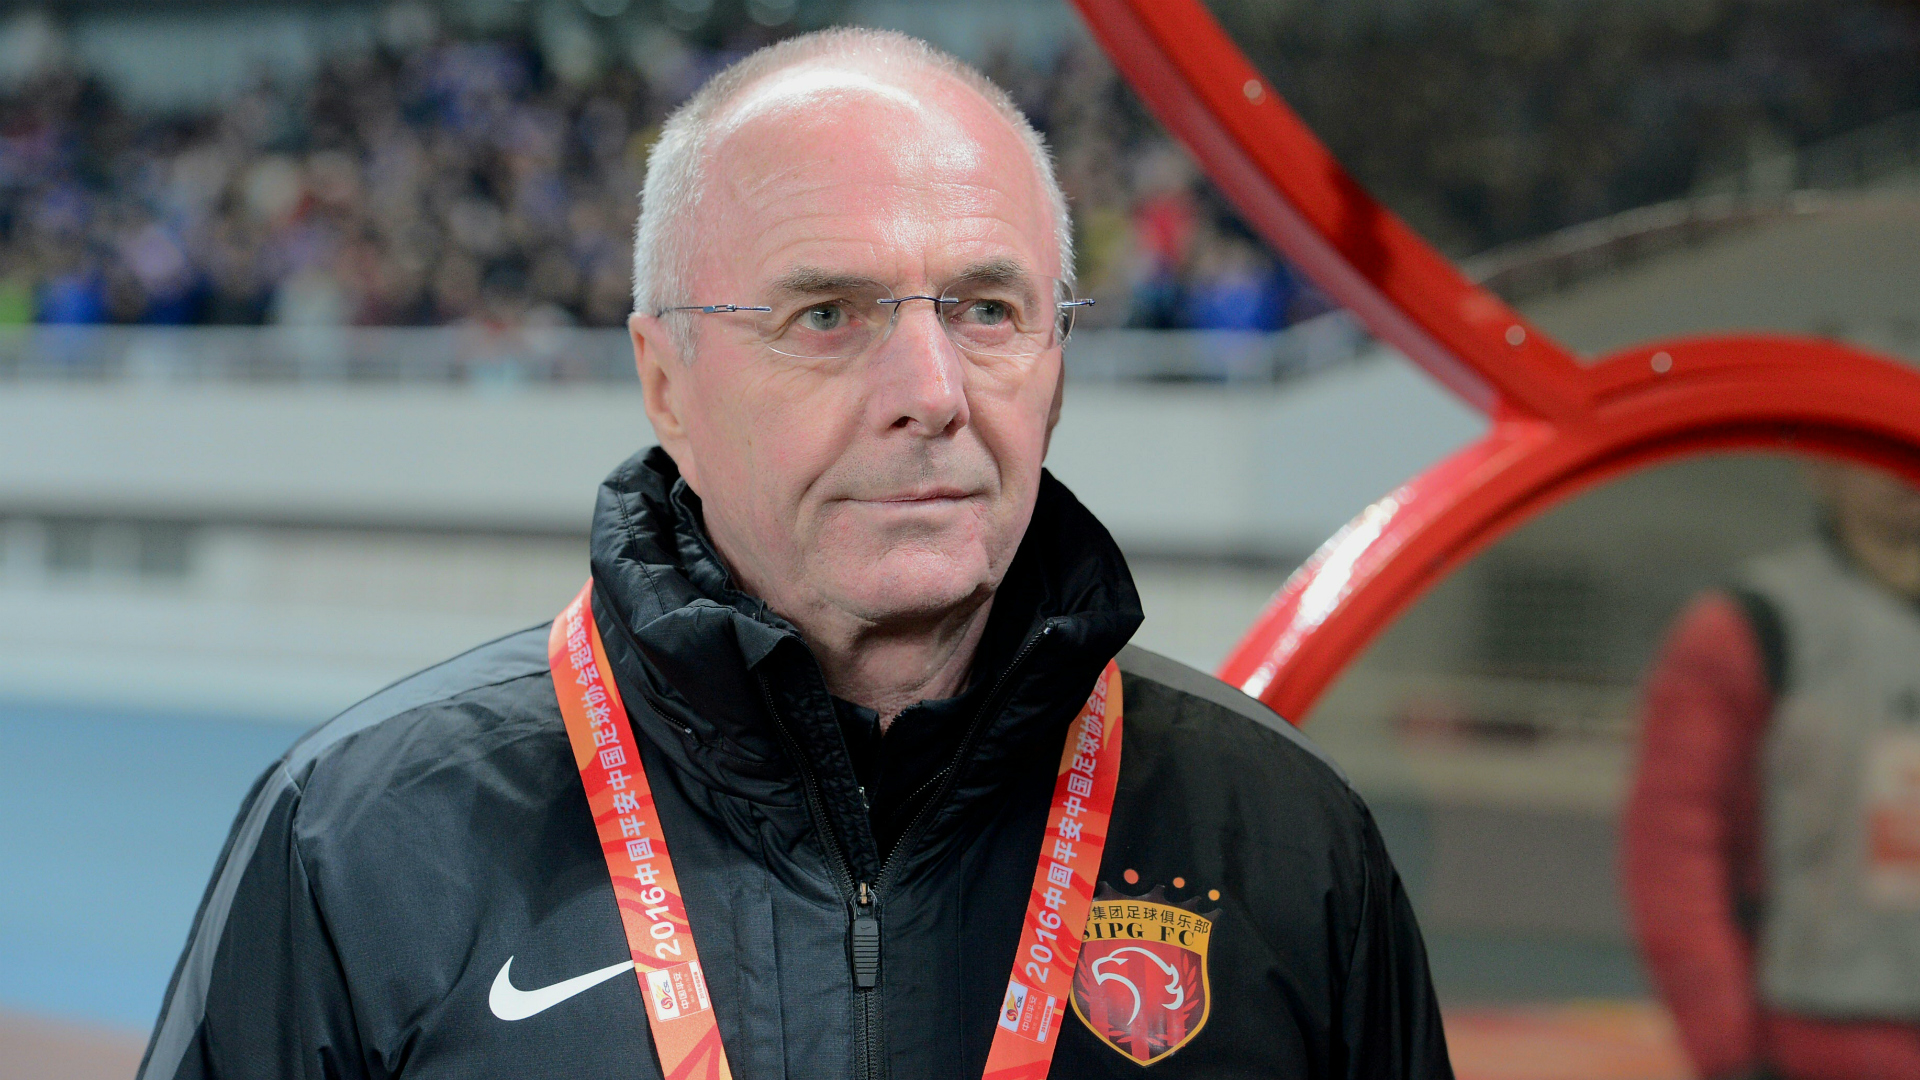 Kyrgyzstan v Philippines: Eriksson remains hopeful